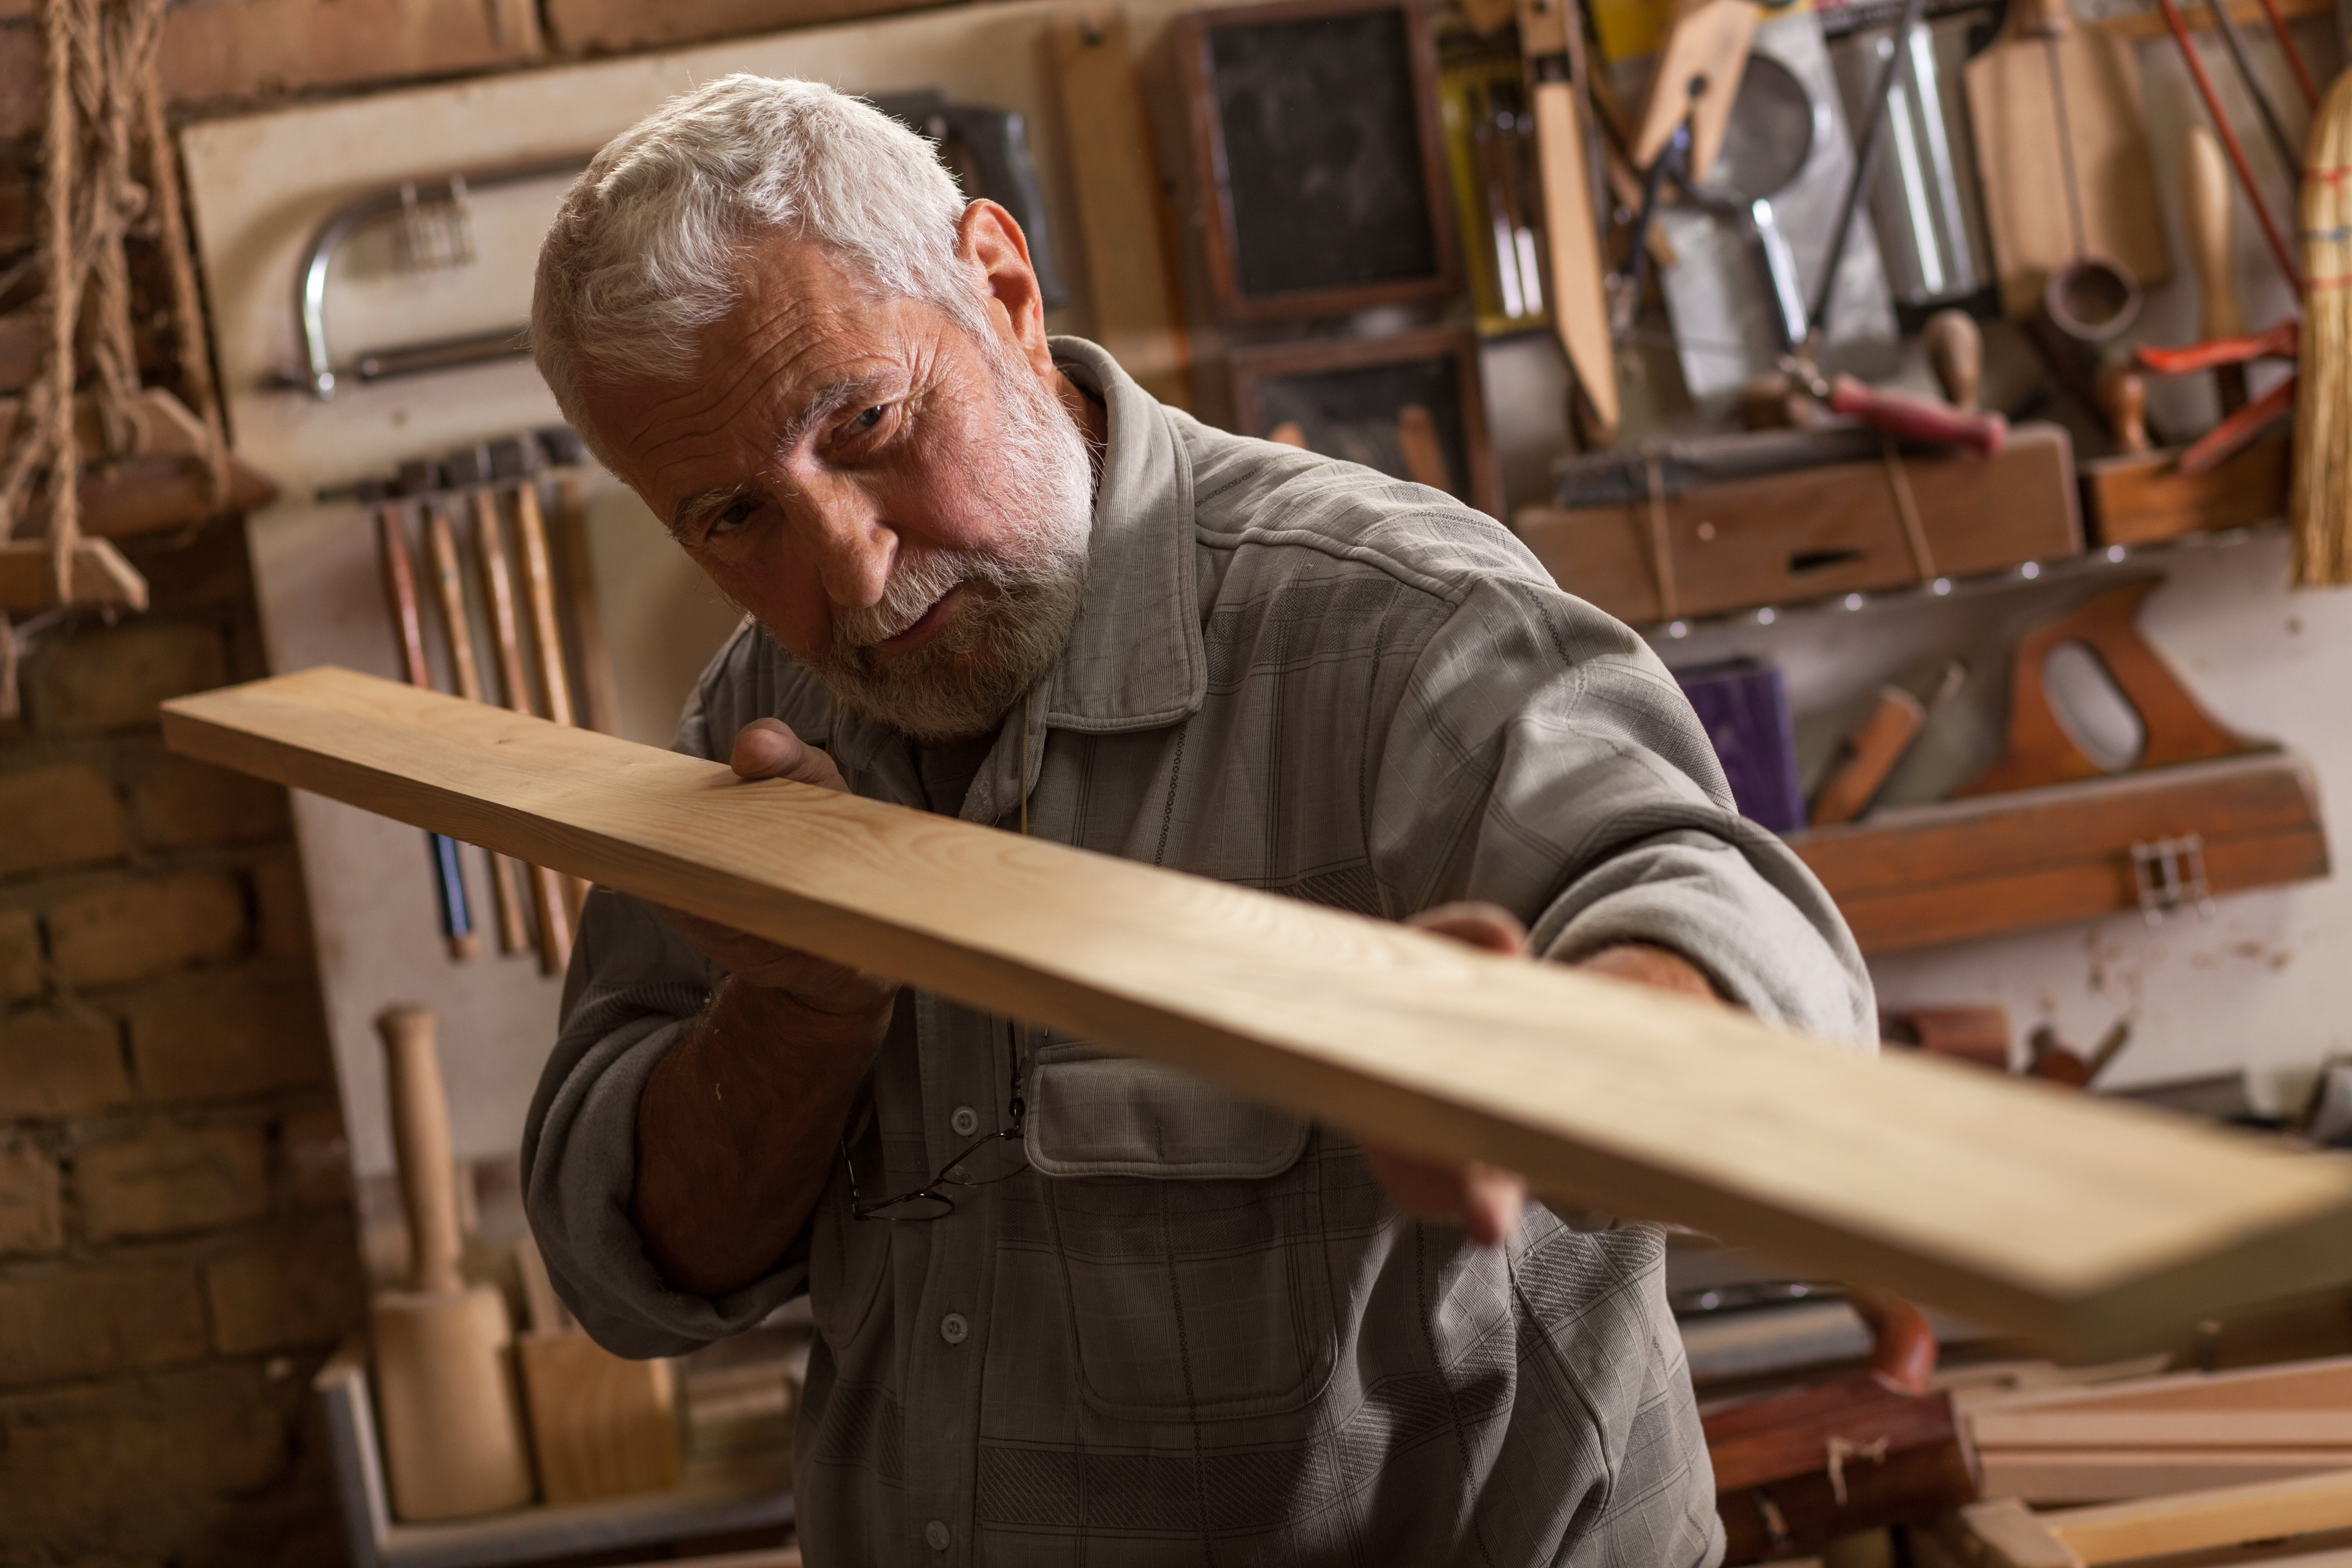 An old carpenter working on his craft | Photo: Shutterstock